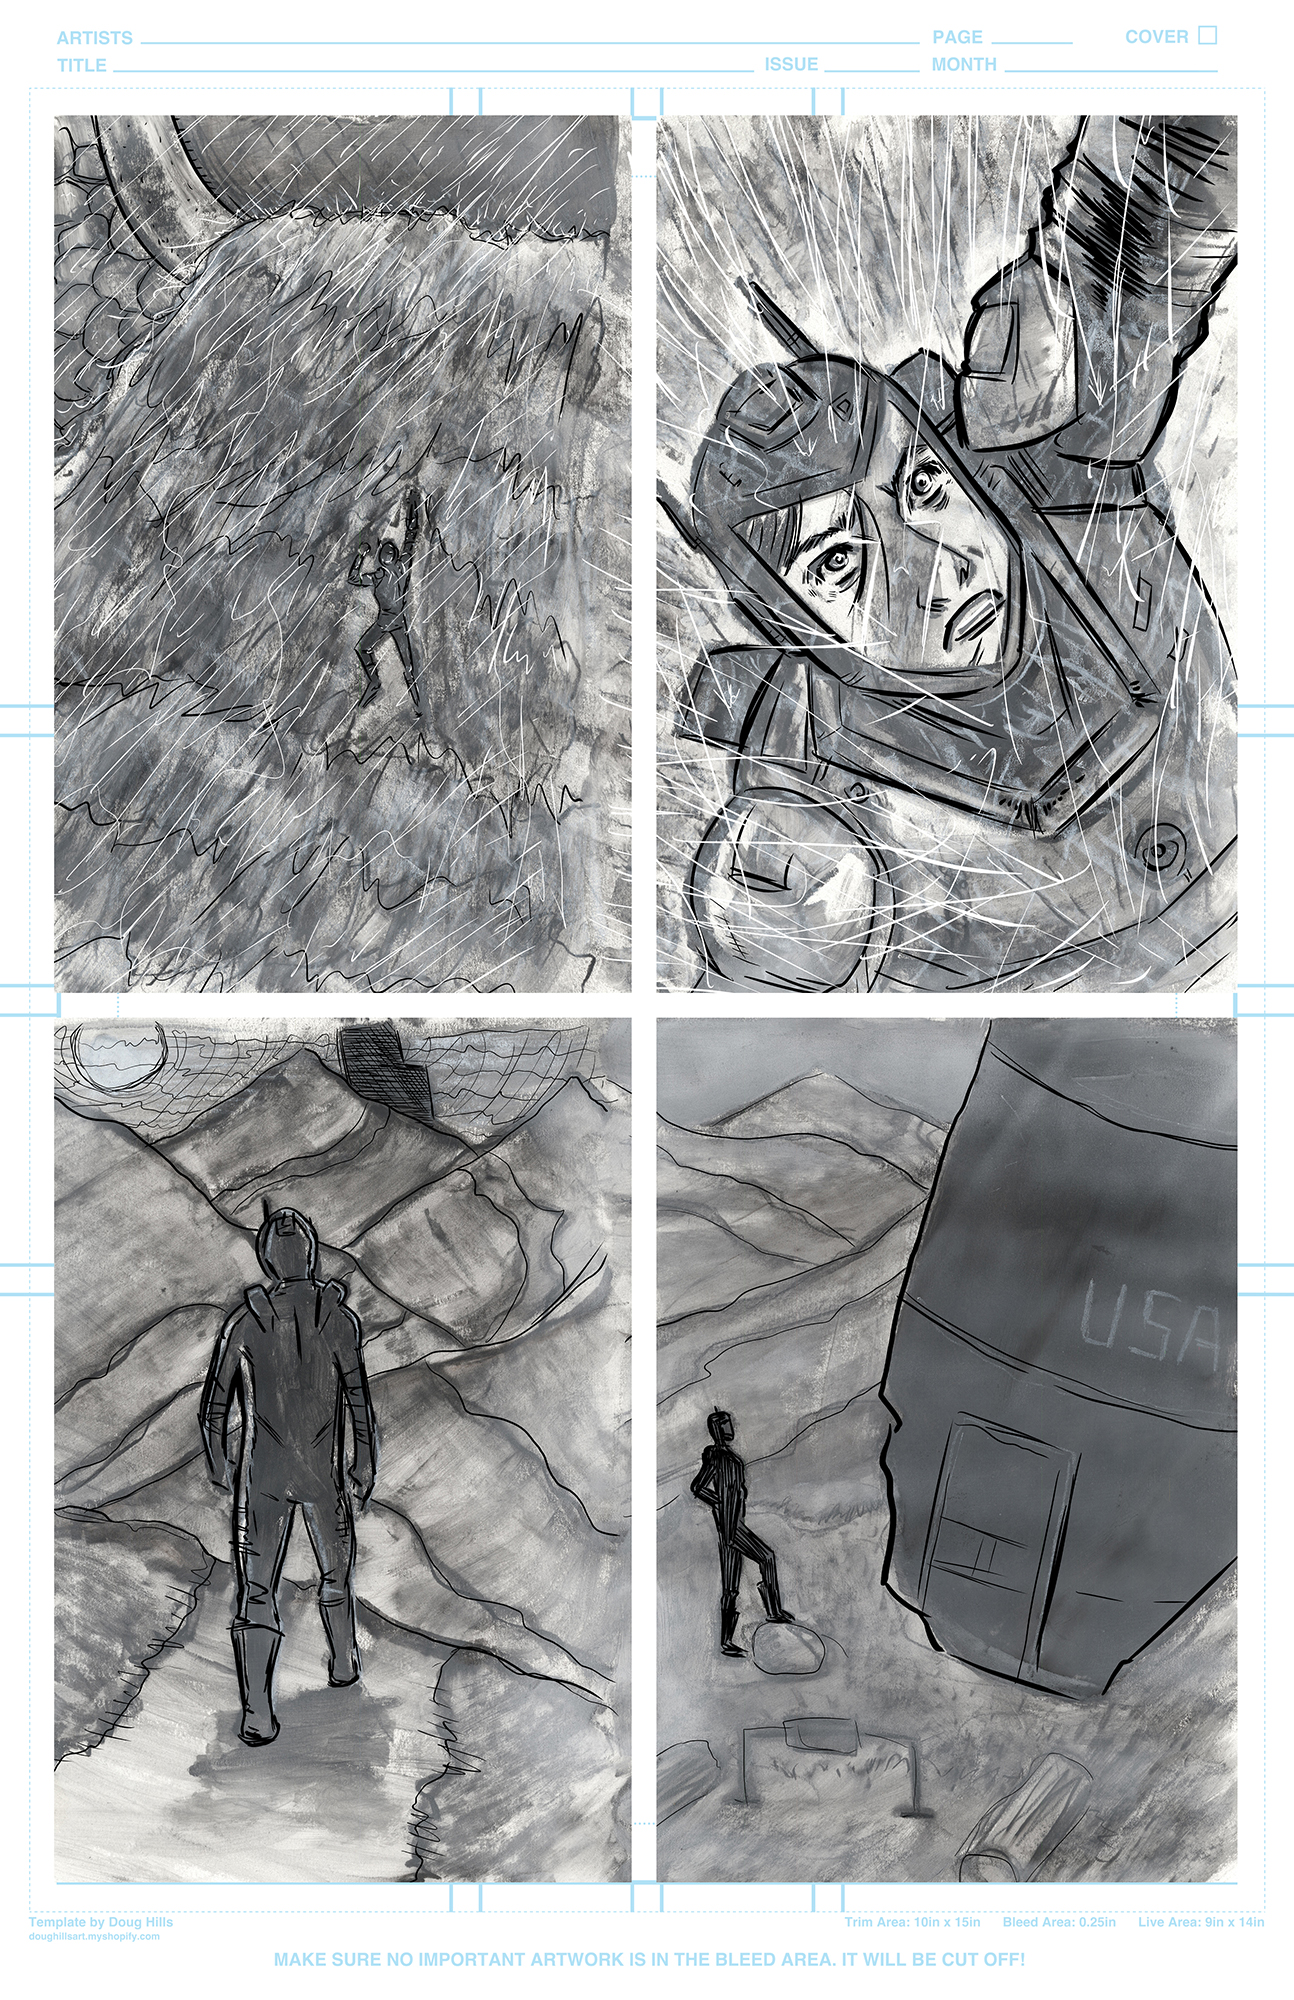 S C O U T Preview Page 4